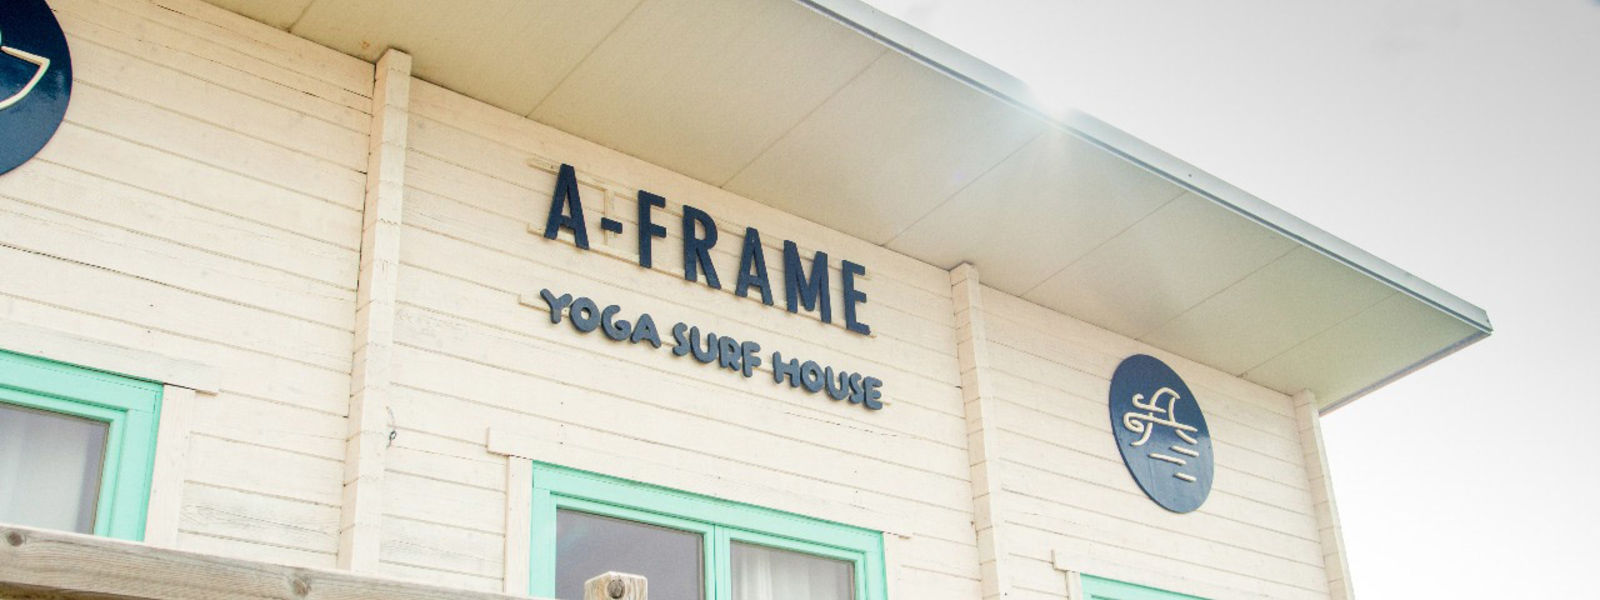 Yoga in El Palmar at A-Frame Yoga House